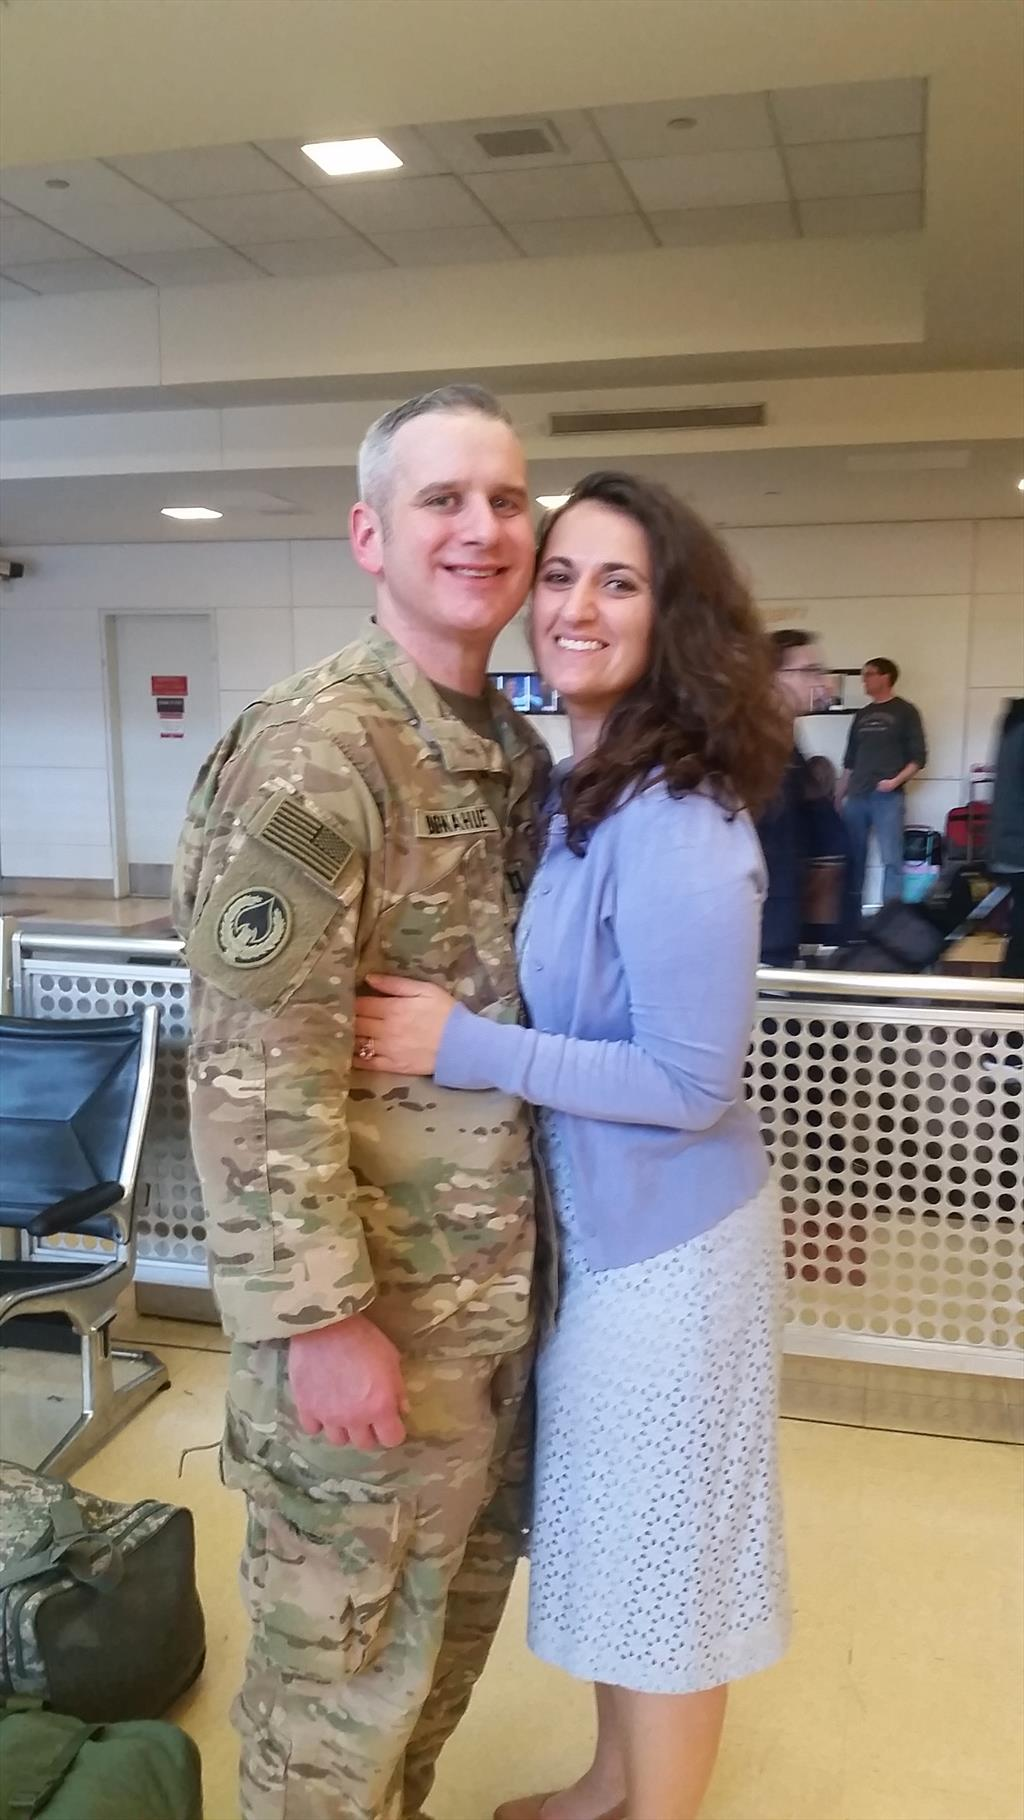 CPT Donahue pictured with his wife Ashley Ludovicy-Donahue (Class of '09) at the airport upon his return home.